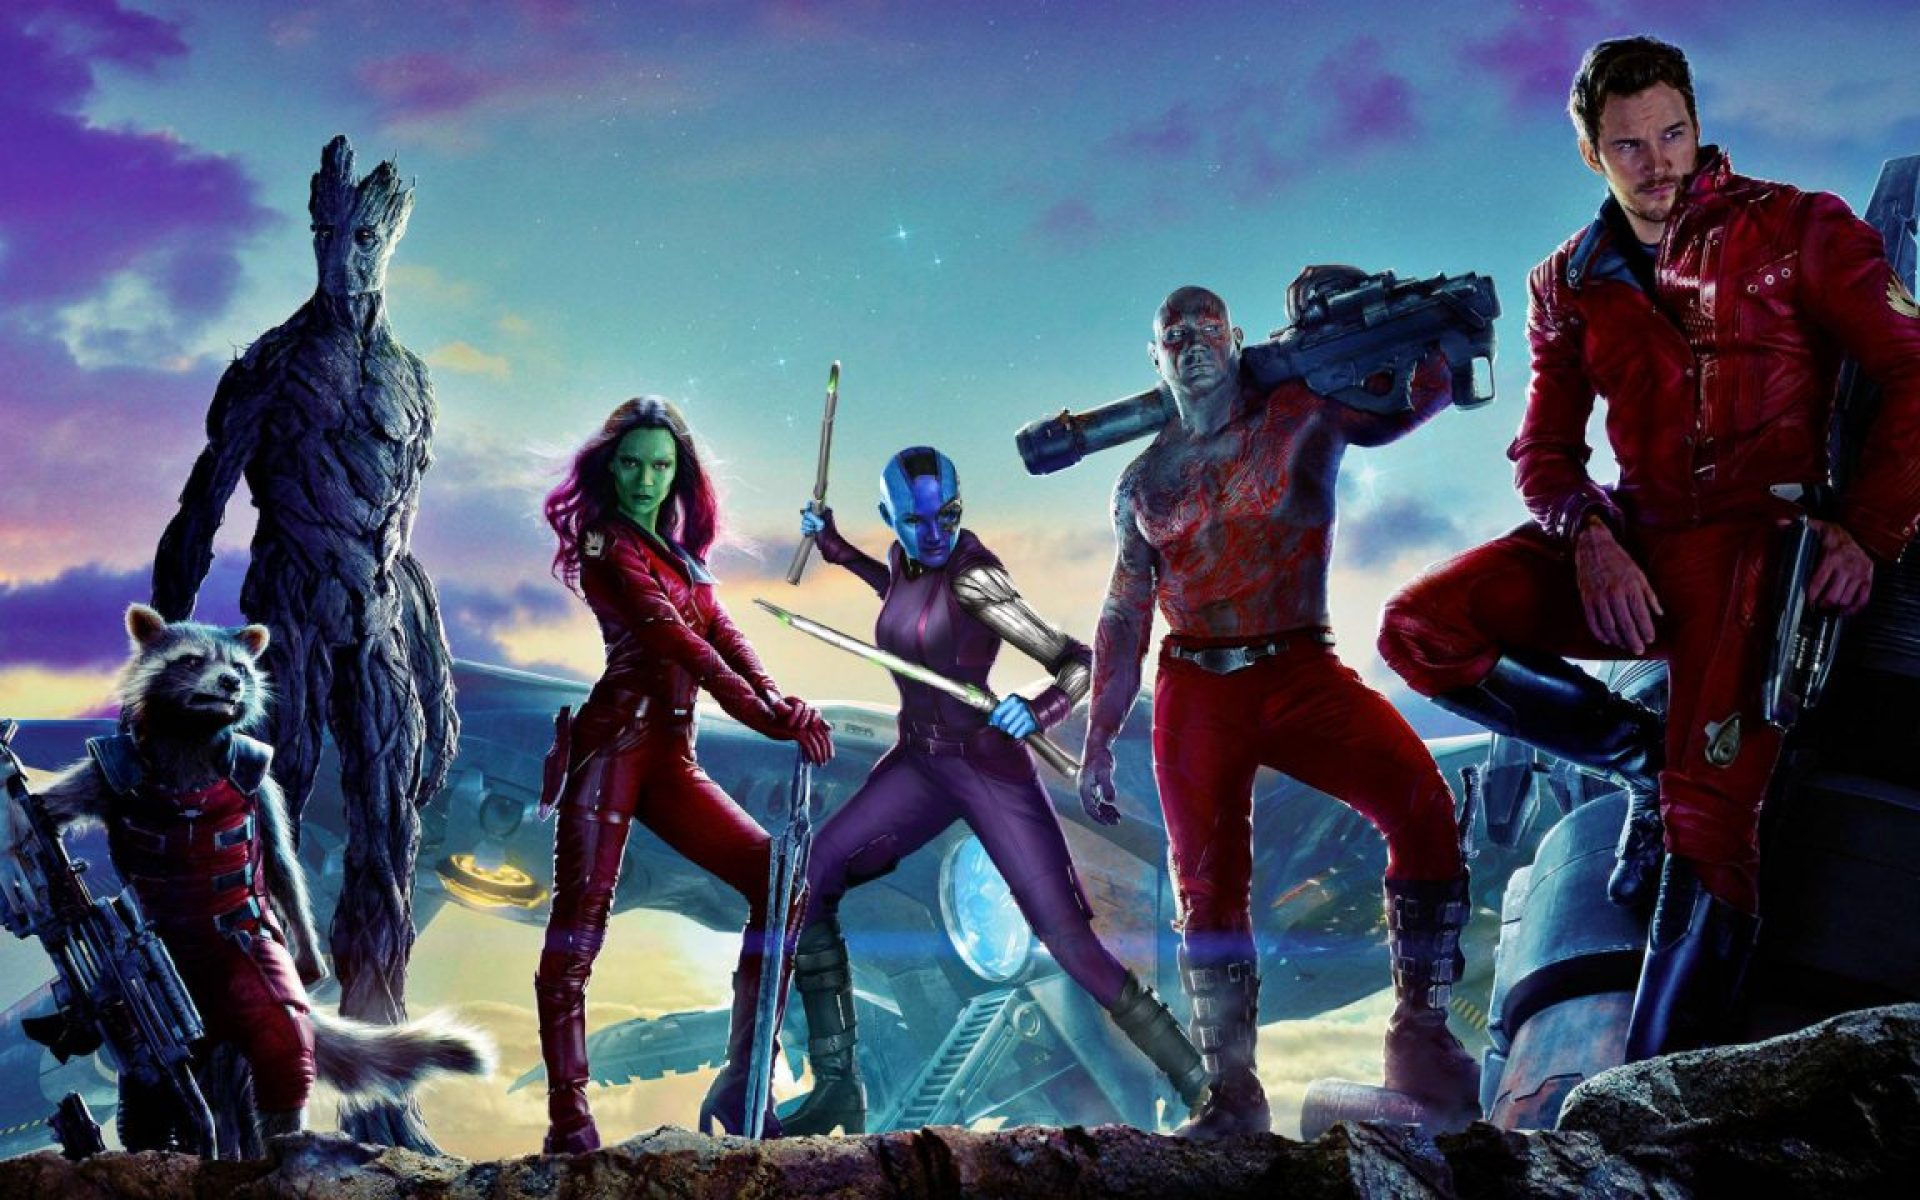 Guardians-of-the-Galaxy-powerup.jpg